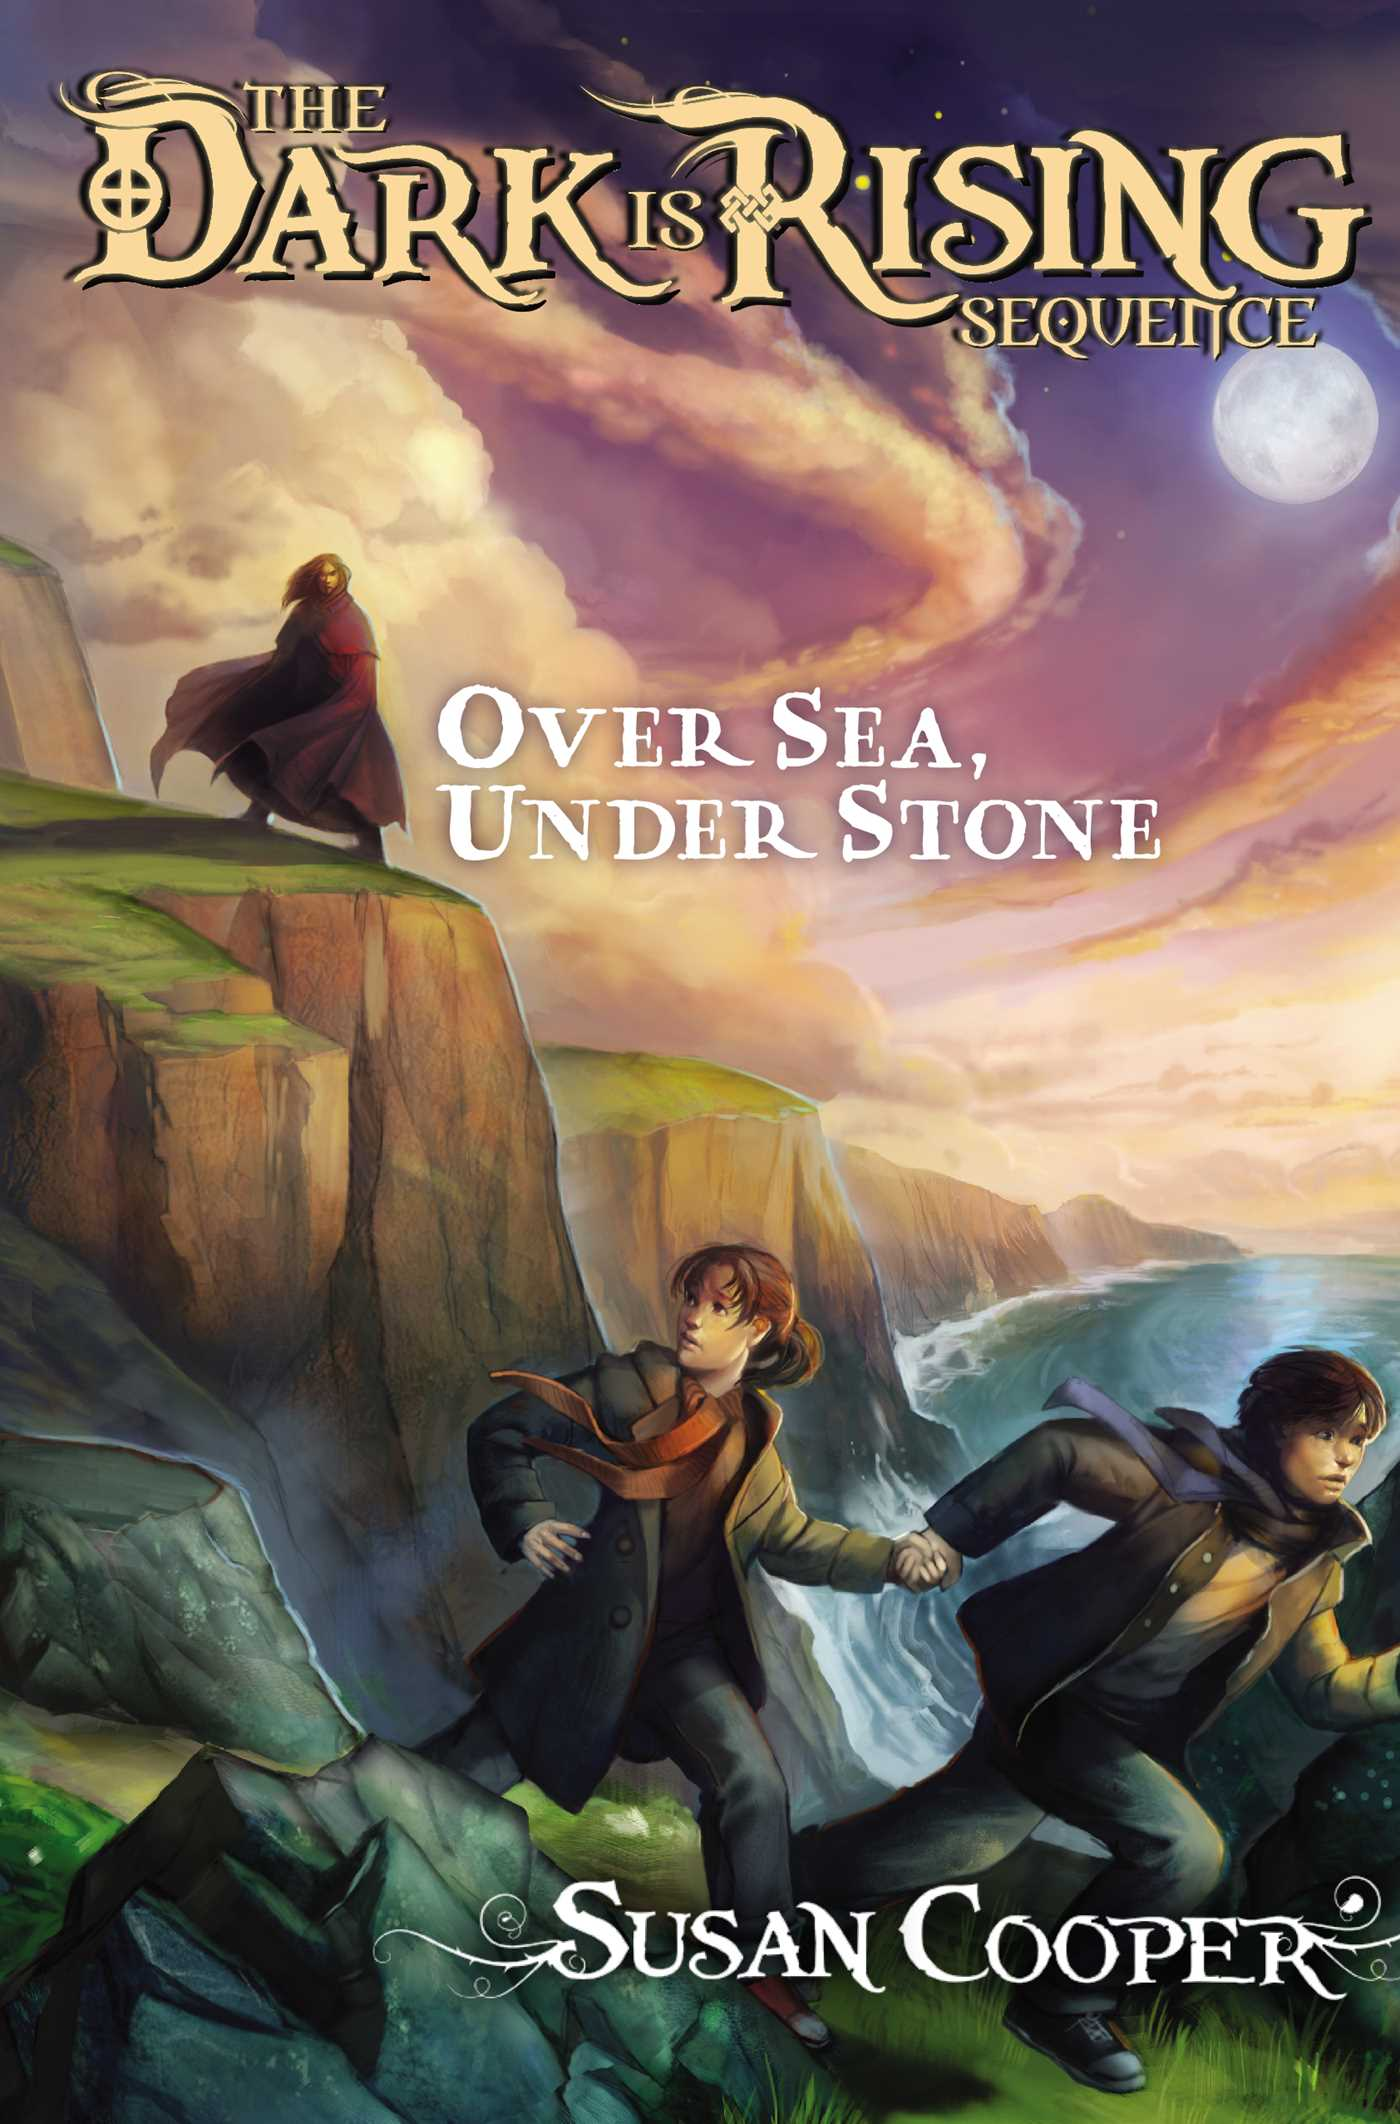 Over-sea-under-stone-9781442458956_hr